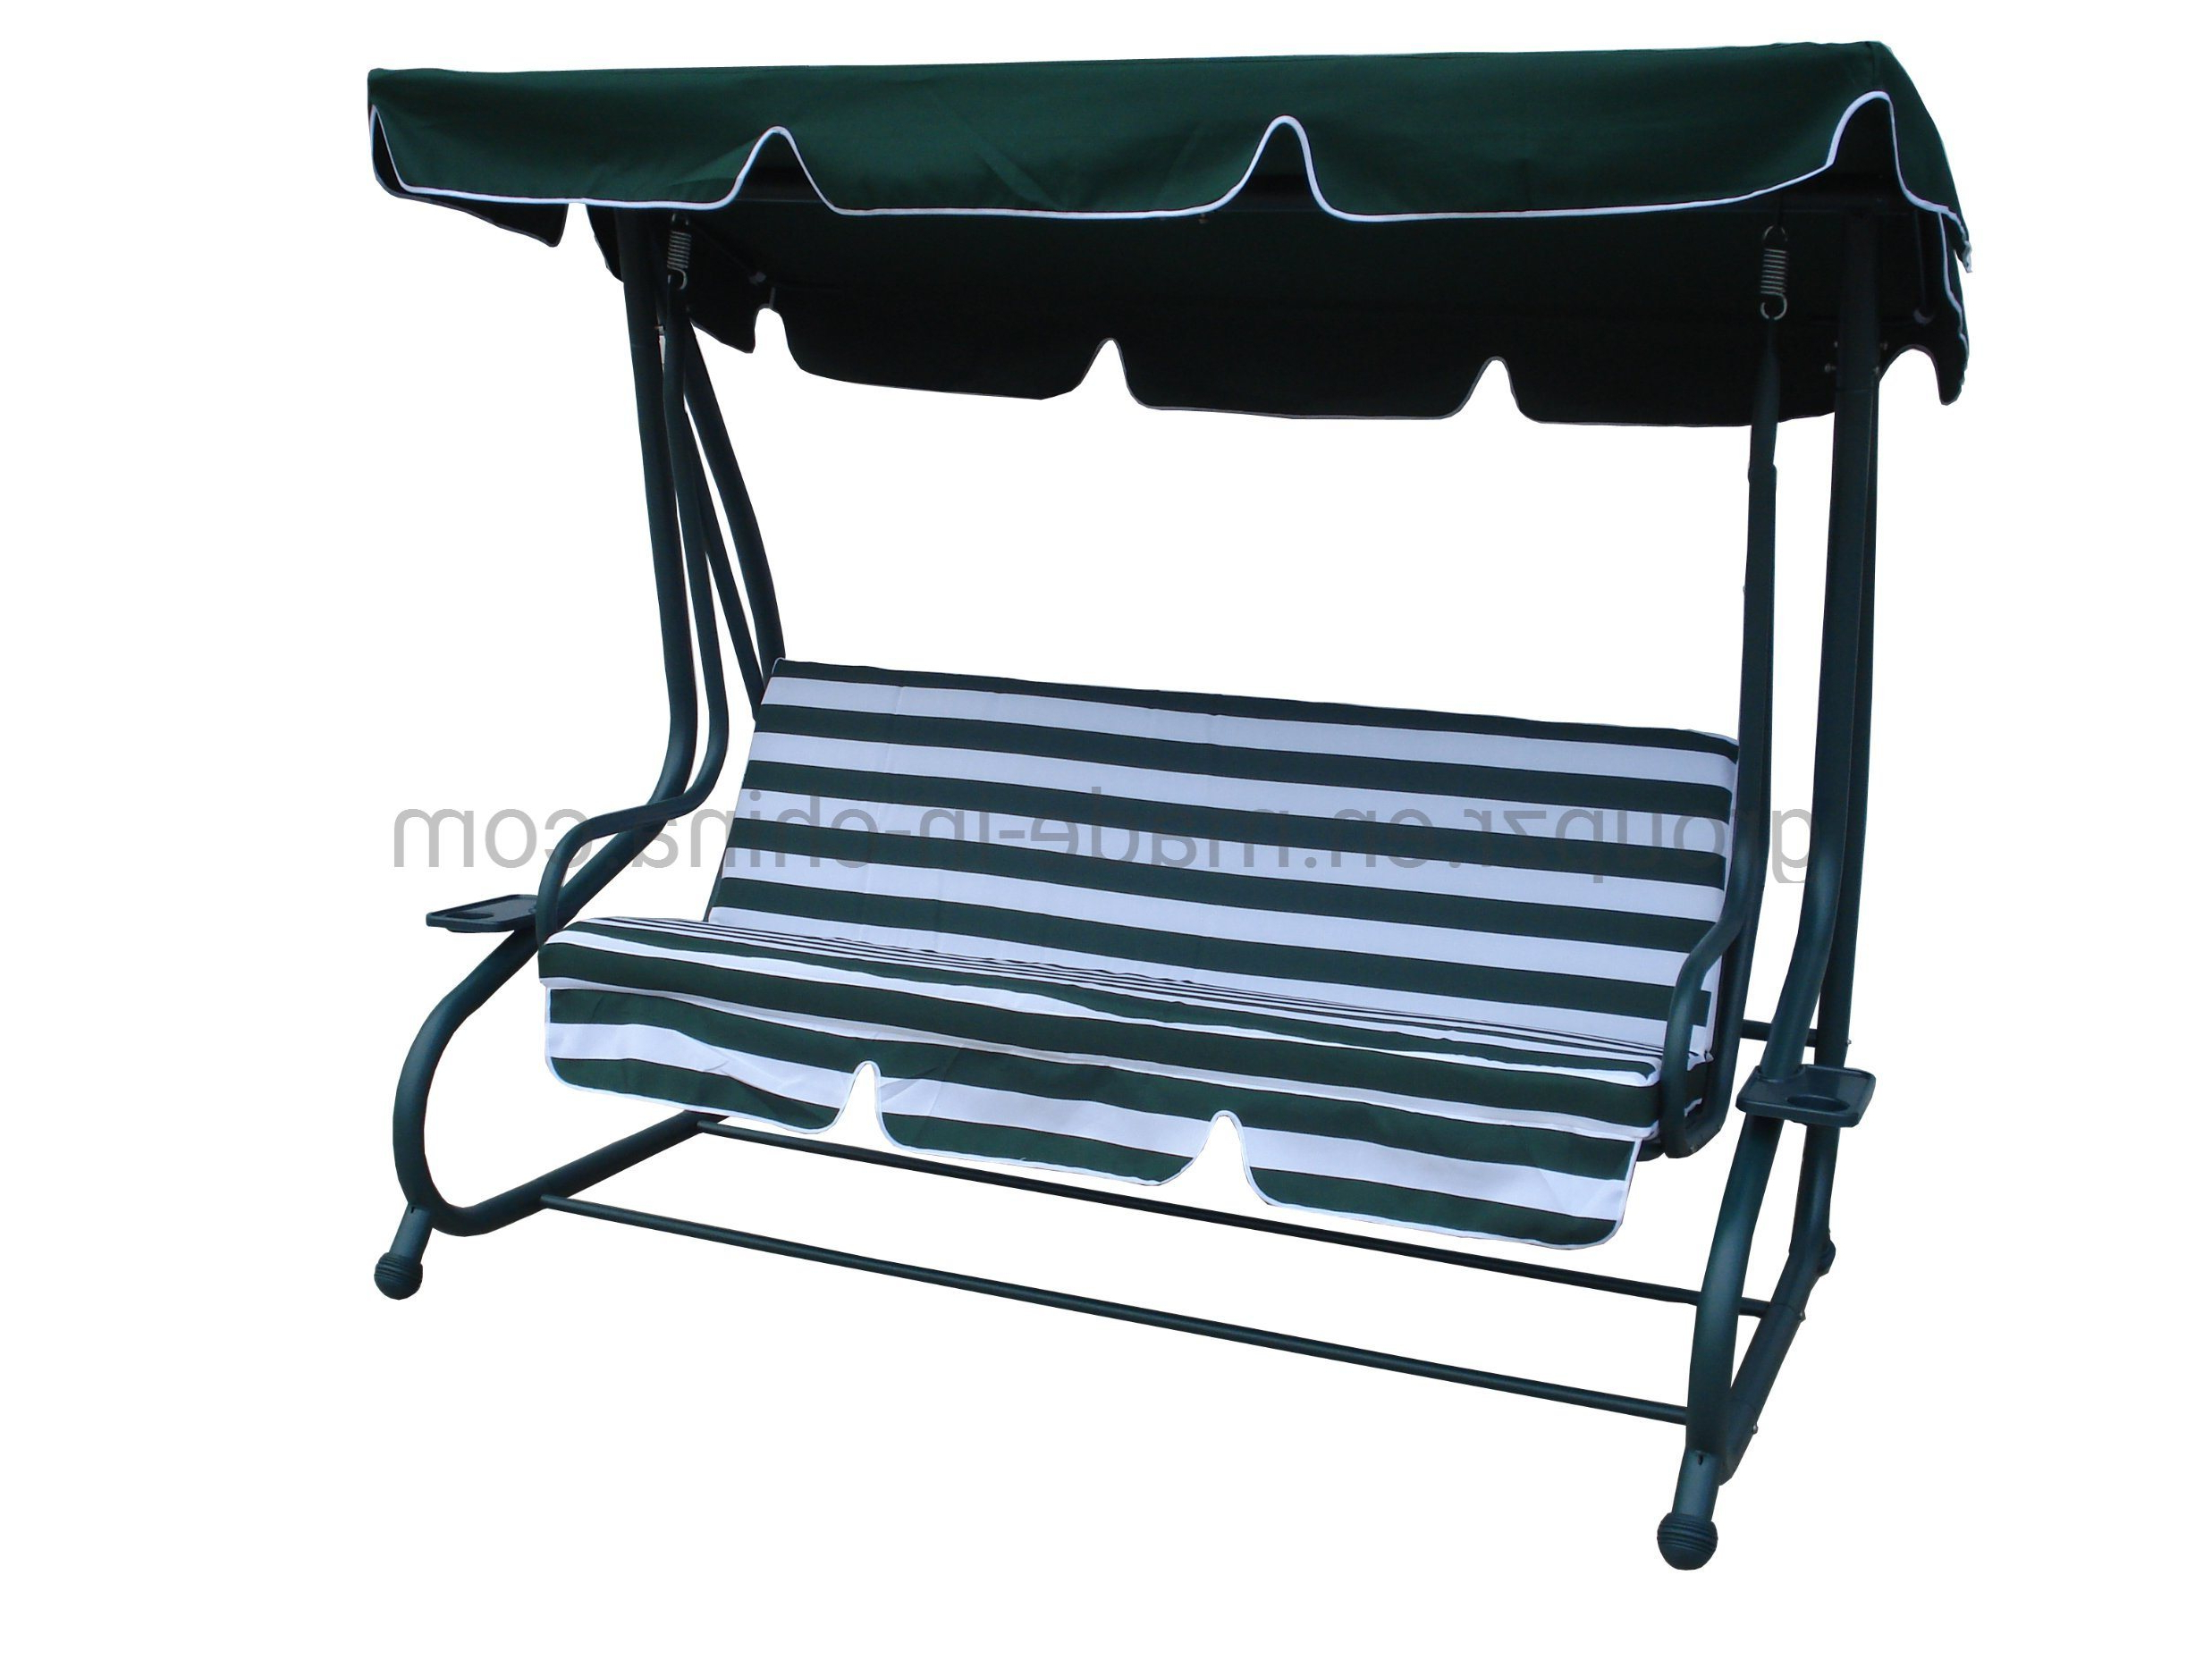 China Outdoor Garden Furniture Hammock Patio Deluxe Swing Pertaining To Famous Garden Leisure Outdoor Hammock Patio Canopy Rocking Chairs (View 19 of 30)